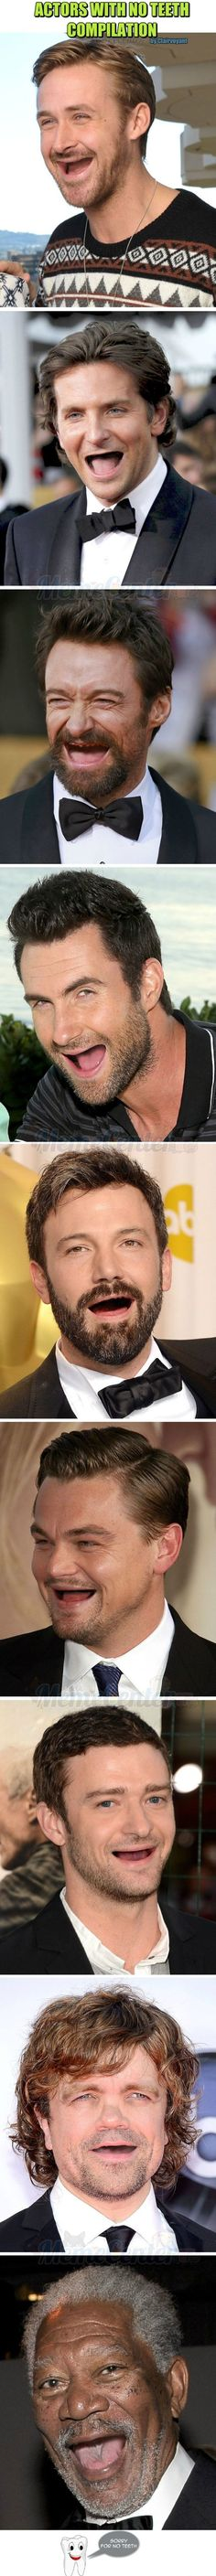 Actors With No Teeth Compilation - www.funny-pictures-blog.com